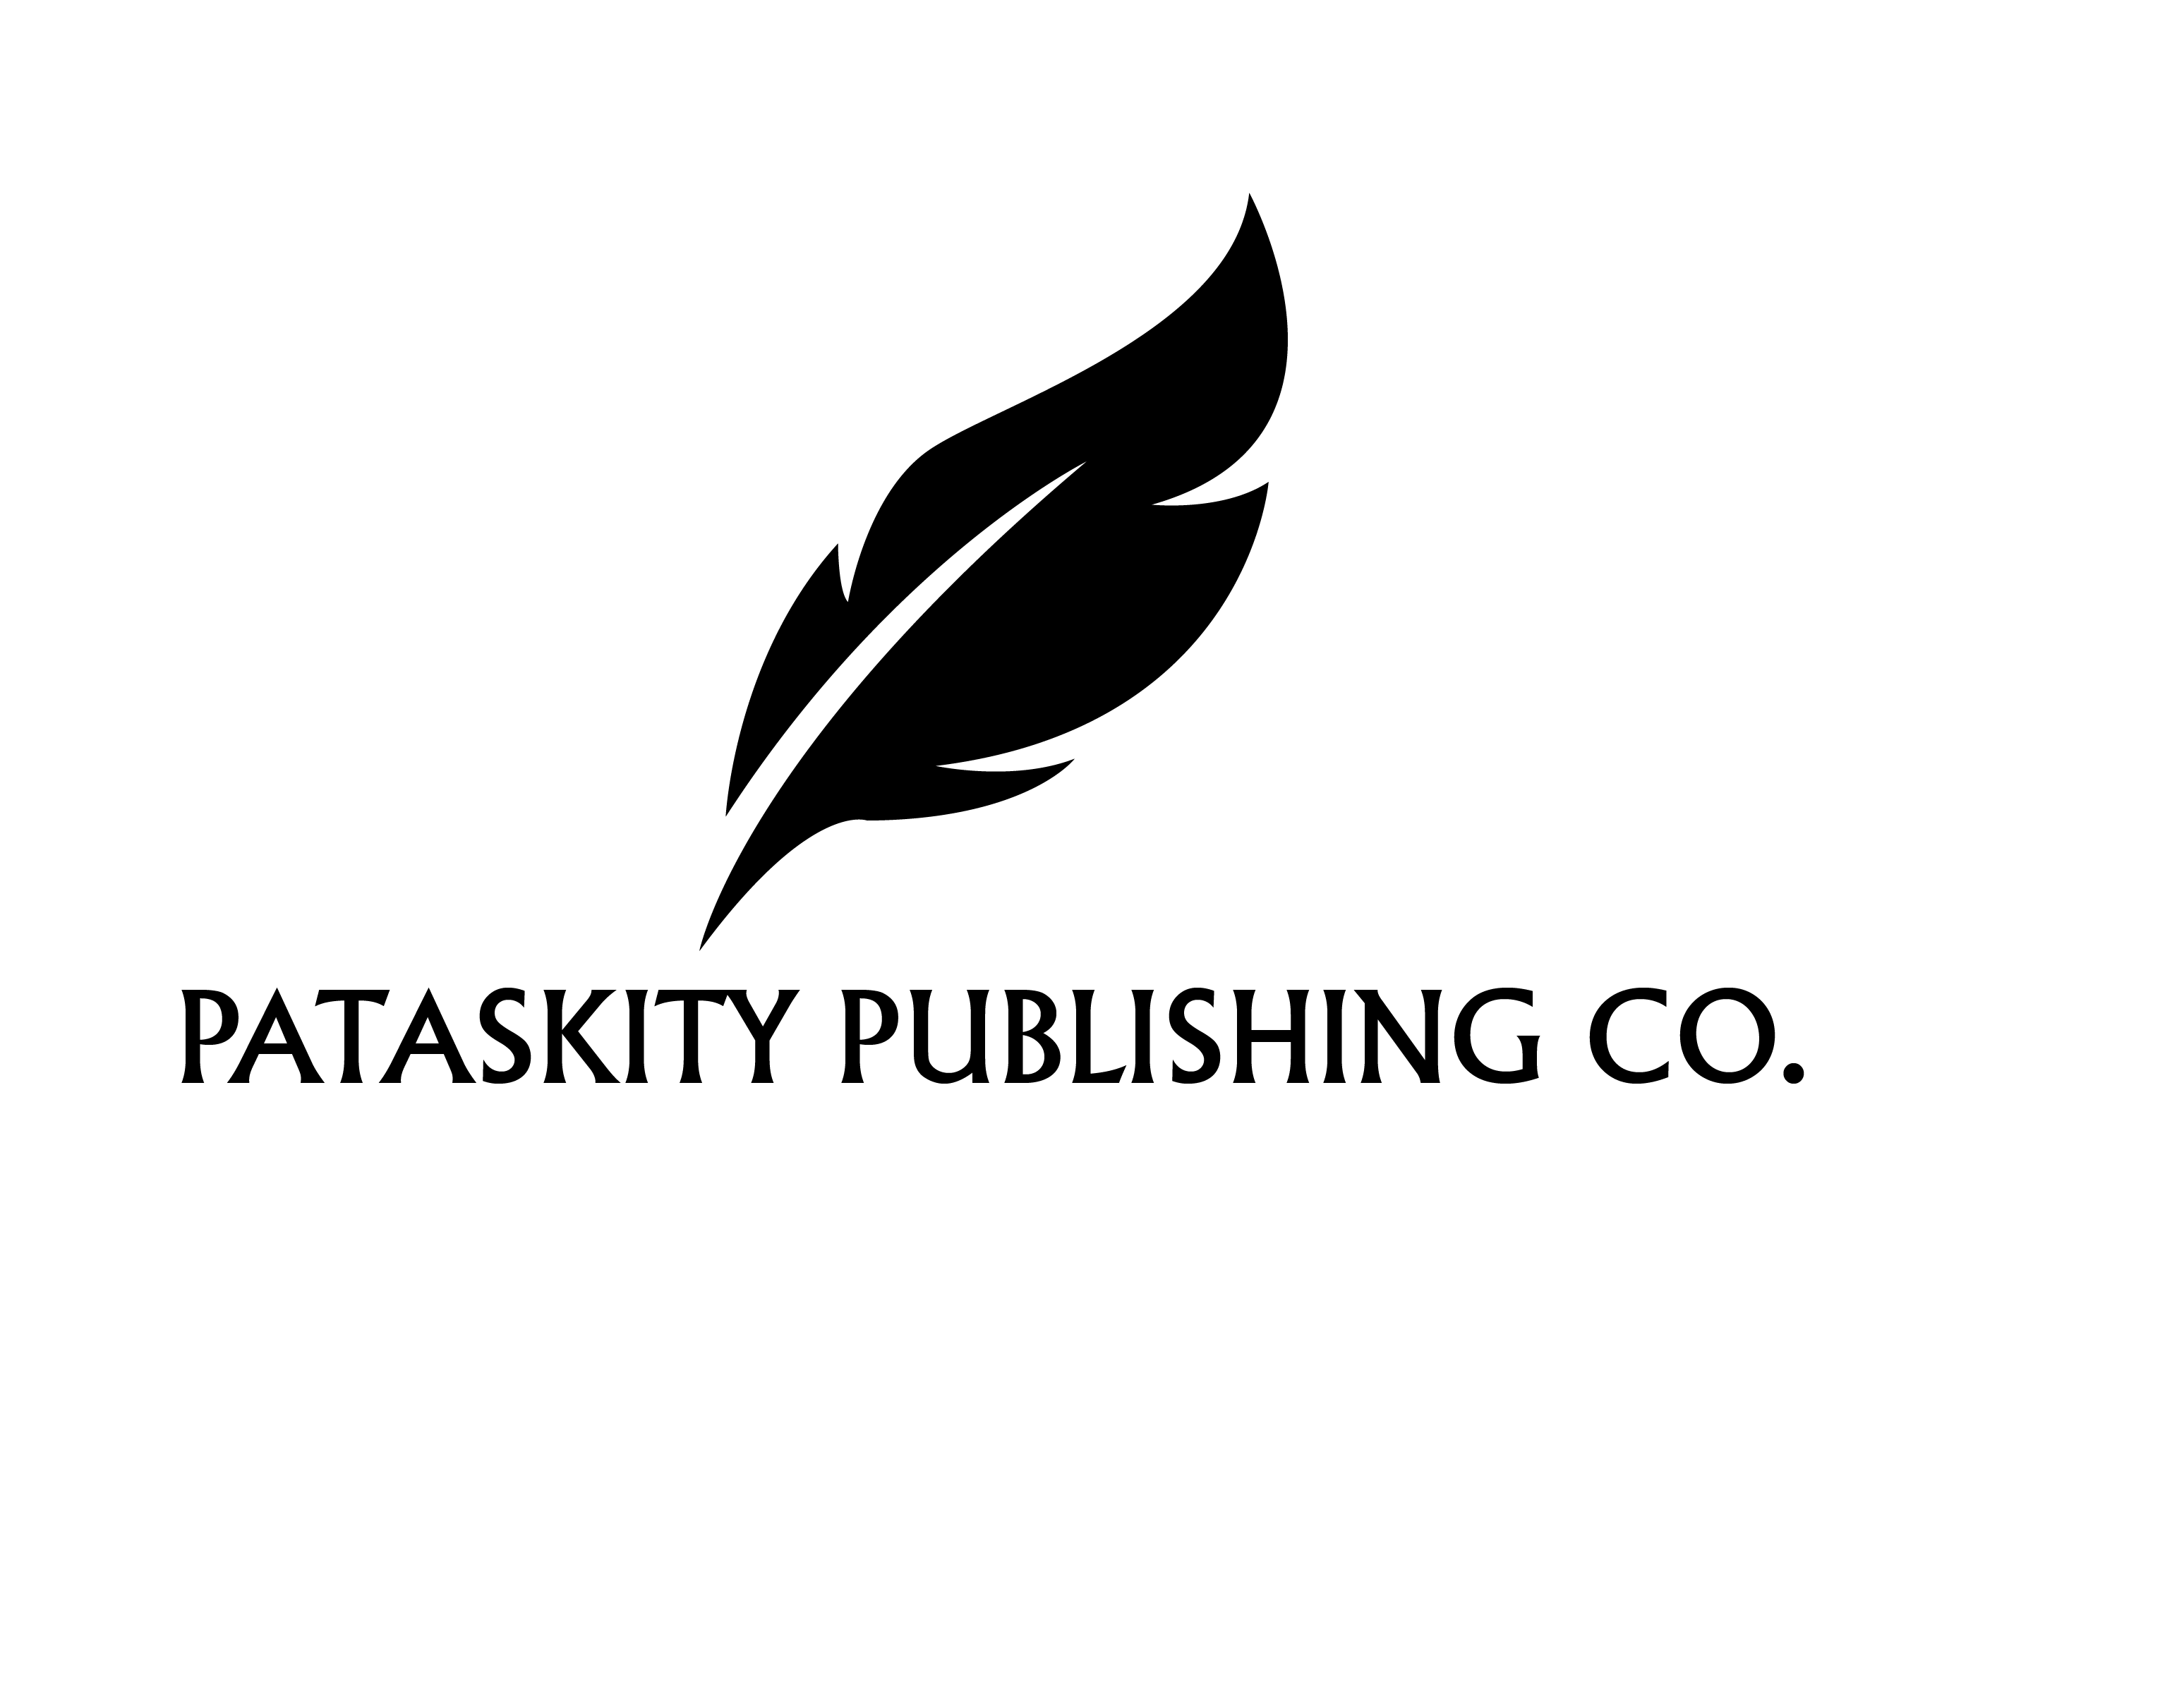 Pataskity Publishing Co.